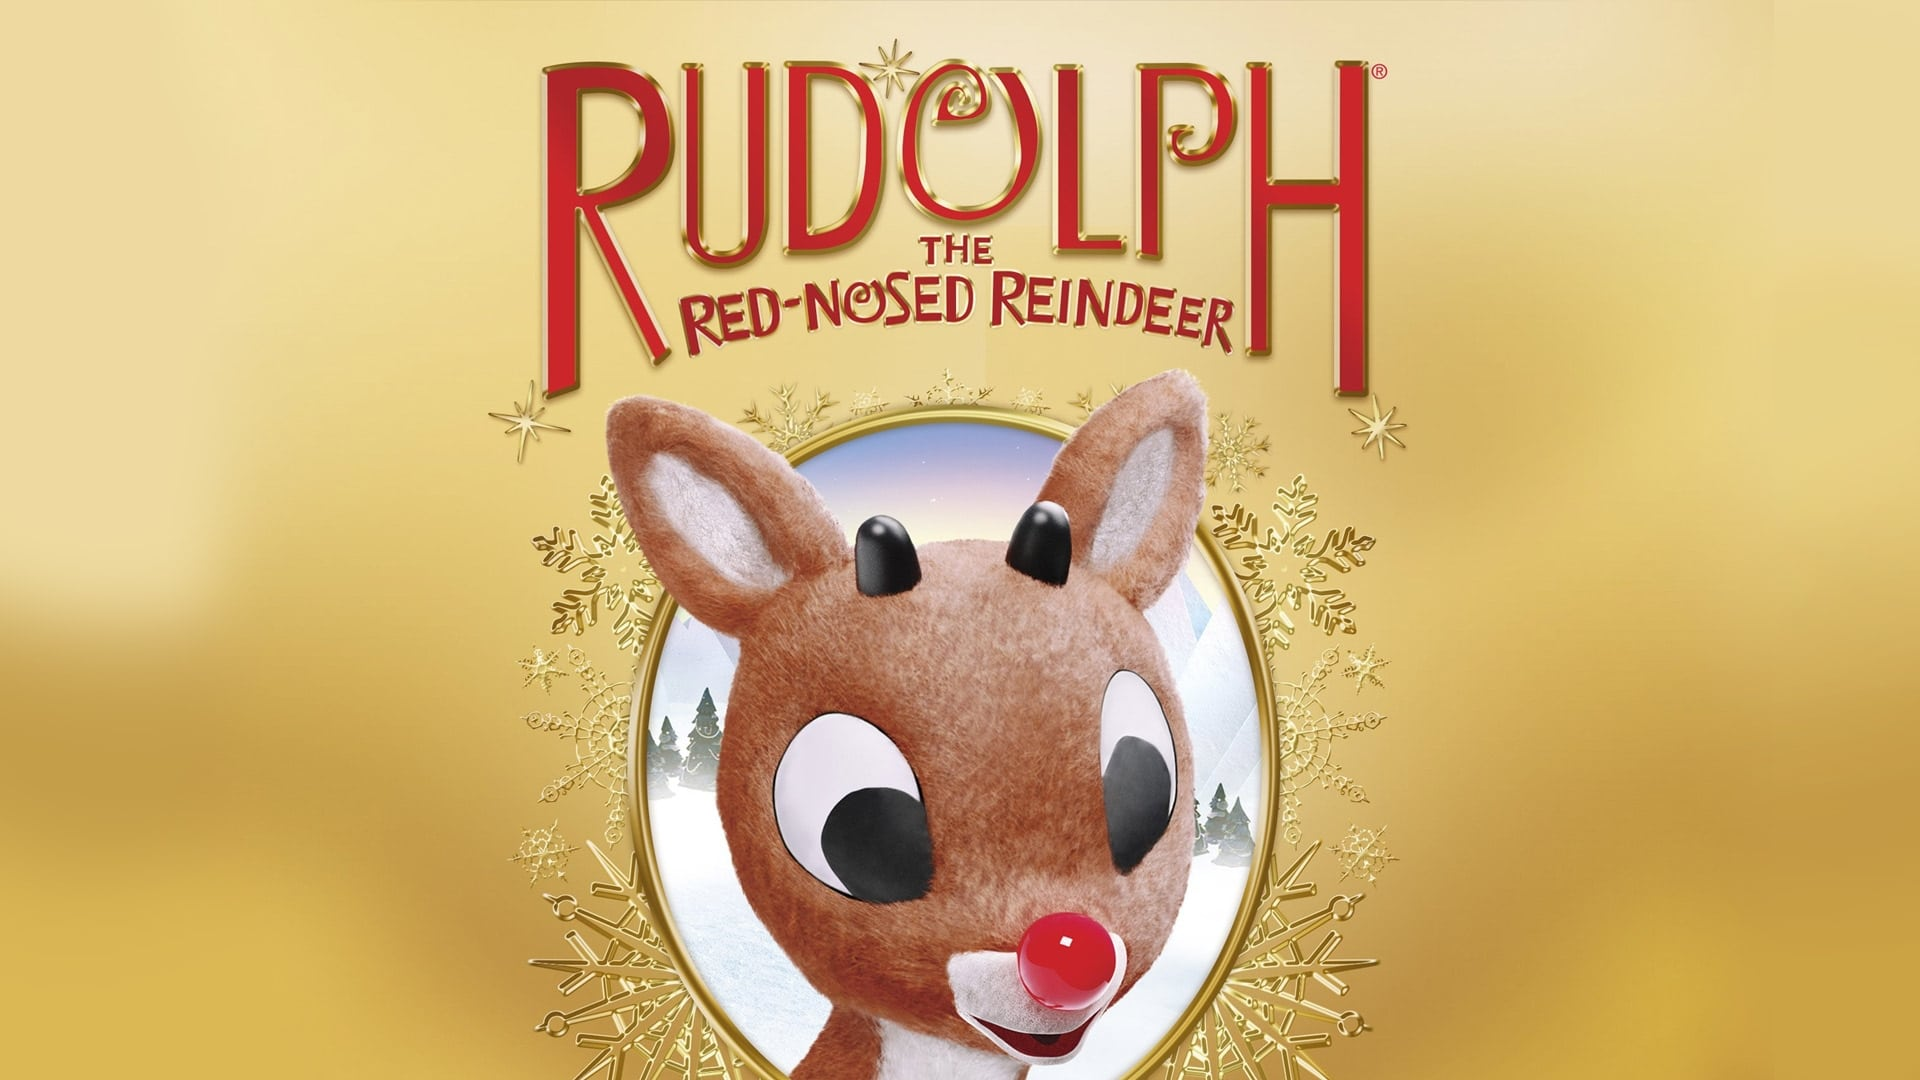 Rudolph the Red-Nosed Reindeer (1964) • movies.film-cine.com